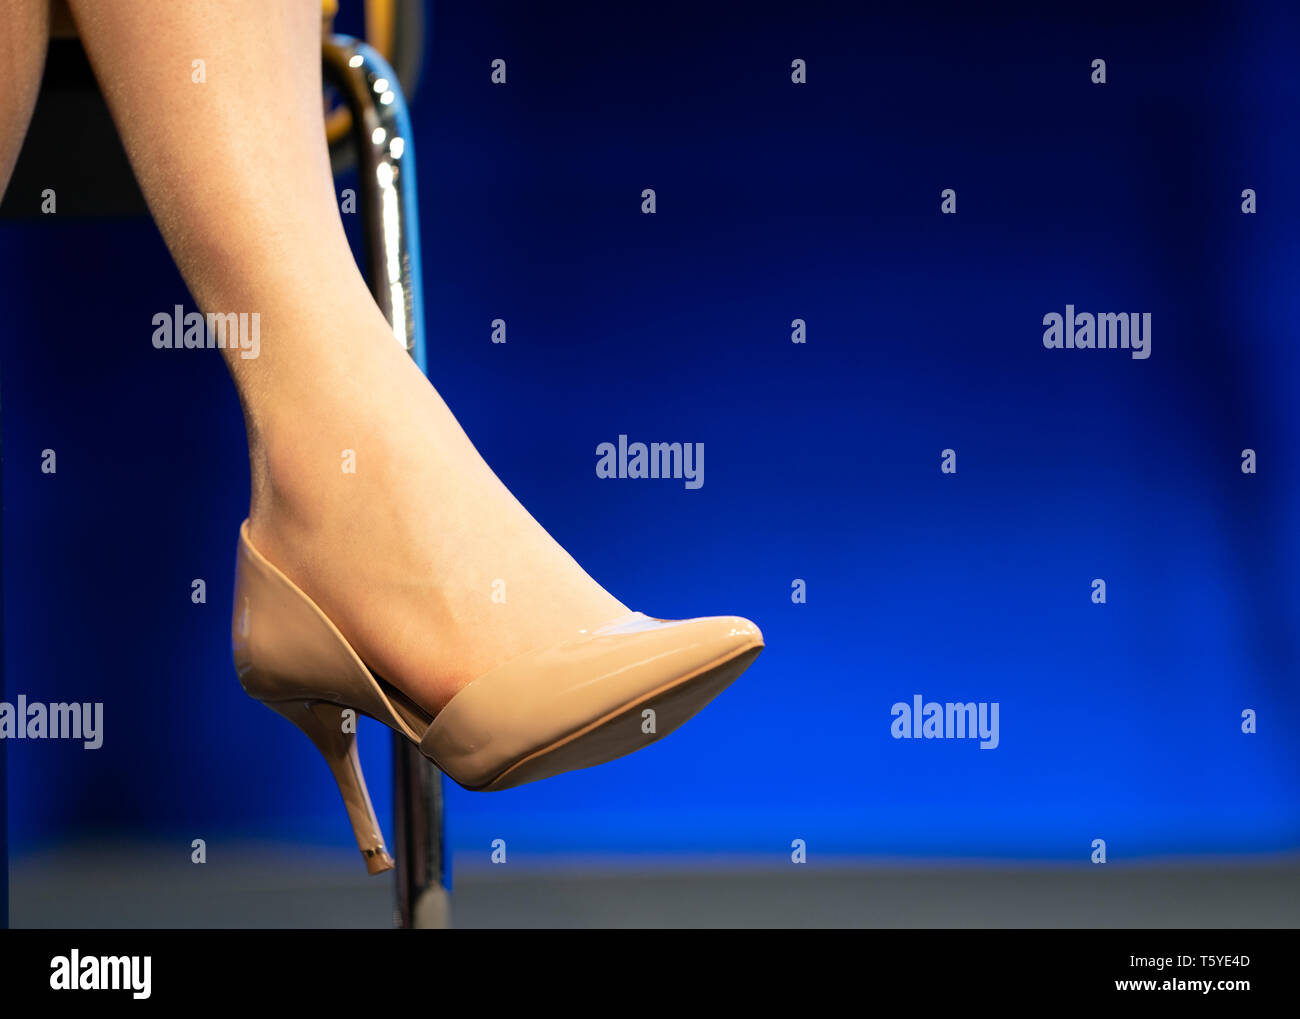 Edinburgh, Scotland, UK. 27 April, 2019. SNP ( Scottish National Party) Spring Conference takes place at the EICC ( Edinburgh International Conference Centre) in Edinburgh. Pictured; detail of First Minister Nicola Sturgeon's high heeled shoe Credit: Iain Masterton/Alamy Live News - Stock Image